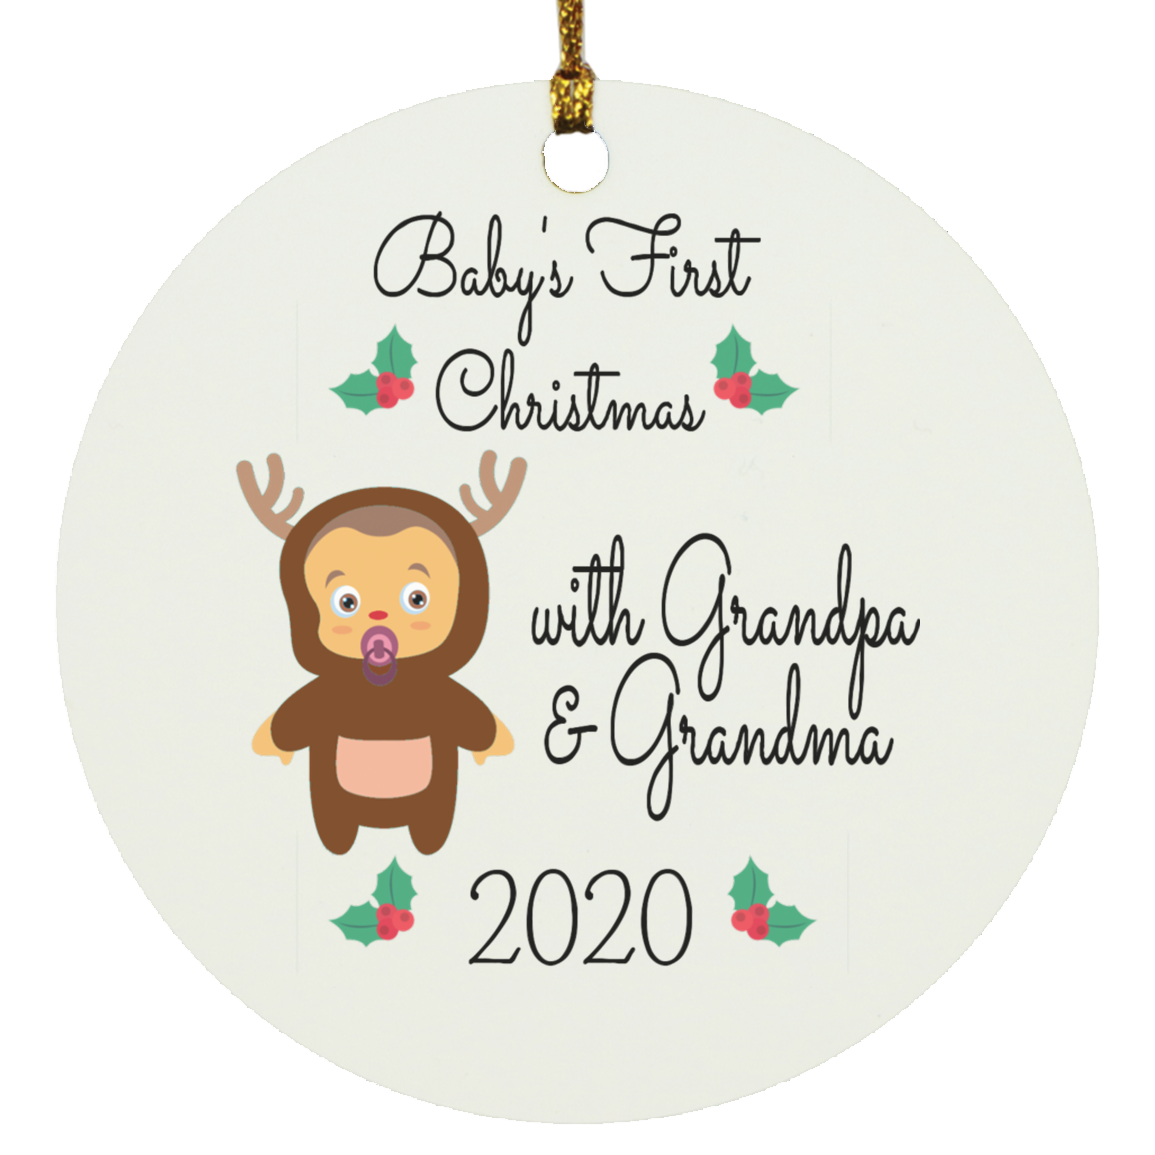 Housewares Baby's First Christmas With Grandpa & Grandma 2020 Ornament - Memorable Treasures